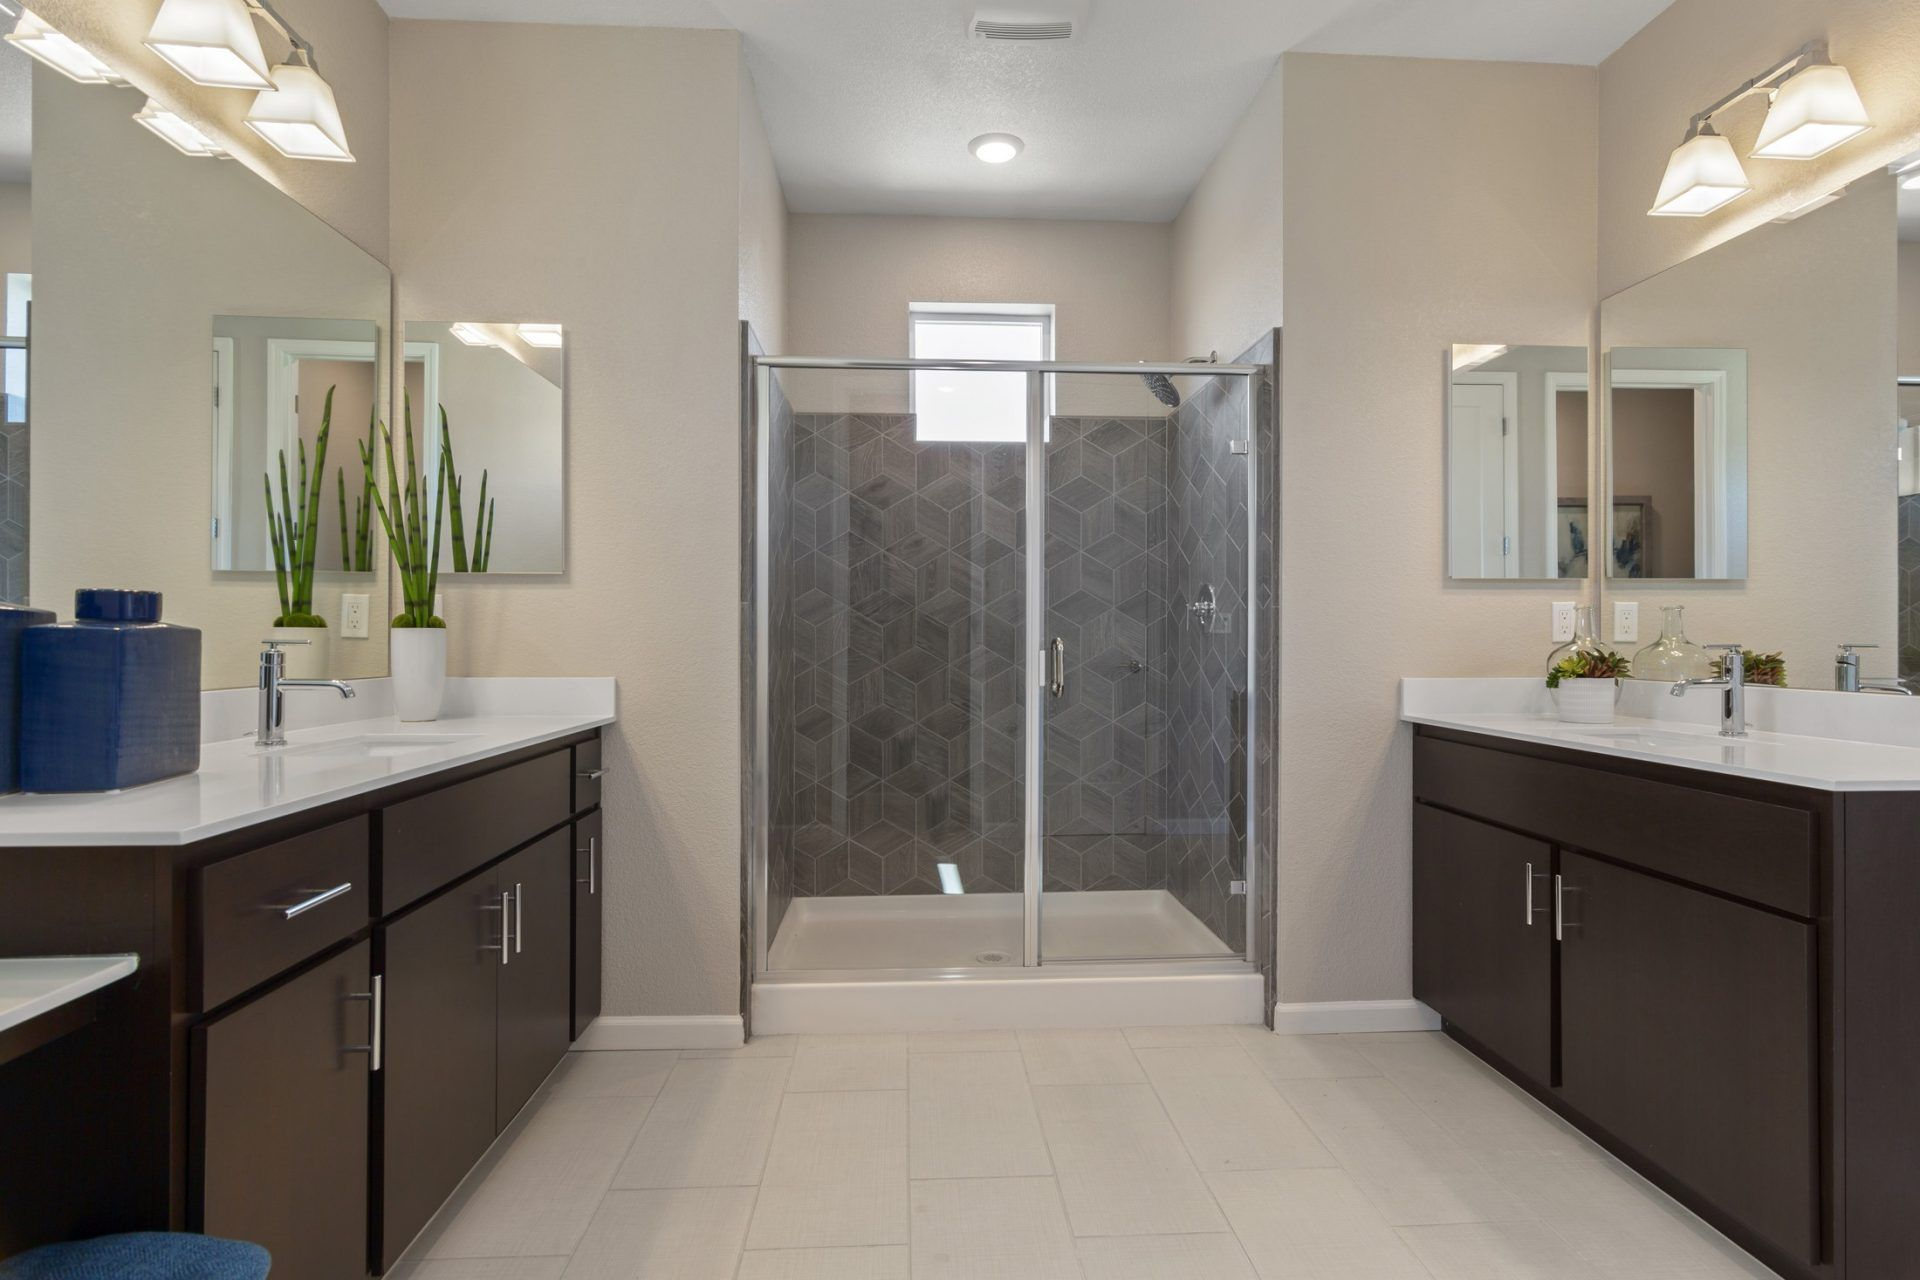 Bathroom featured in the Delta Coves Indigo By Blue Mountain Communities in Oakland-Alameda, CA